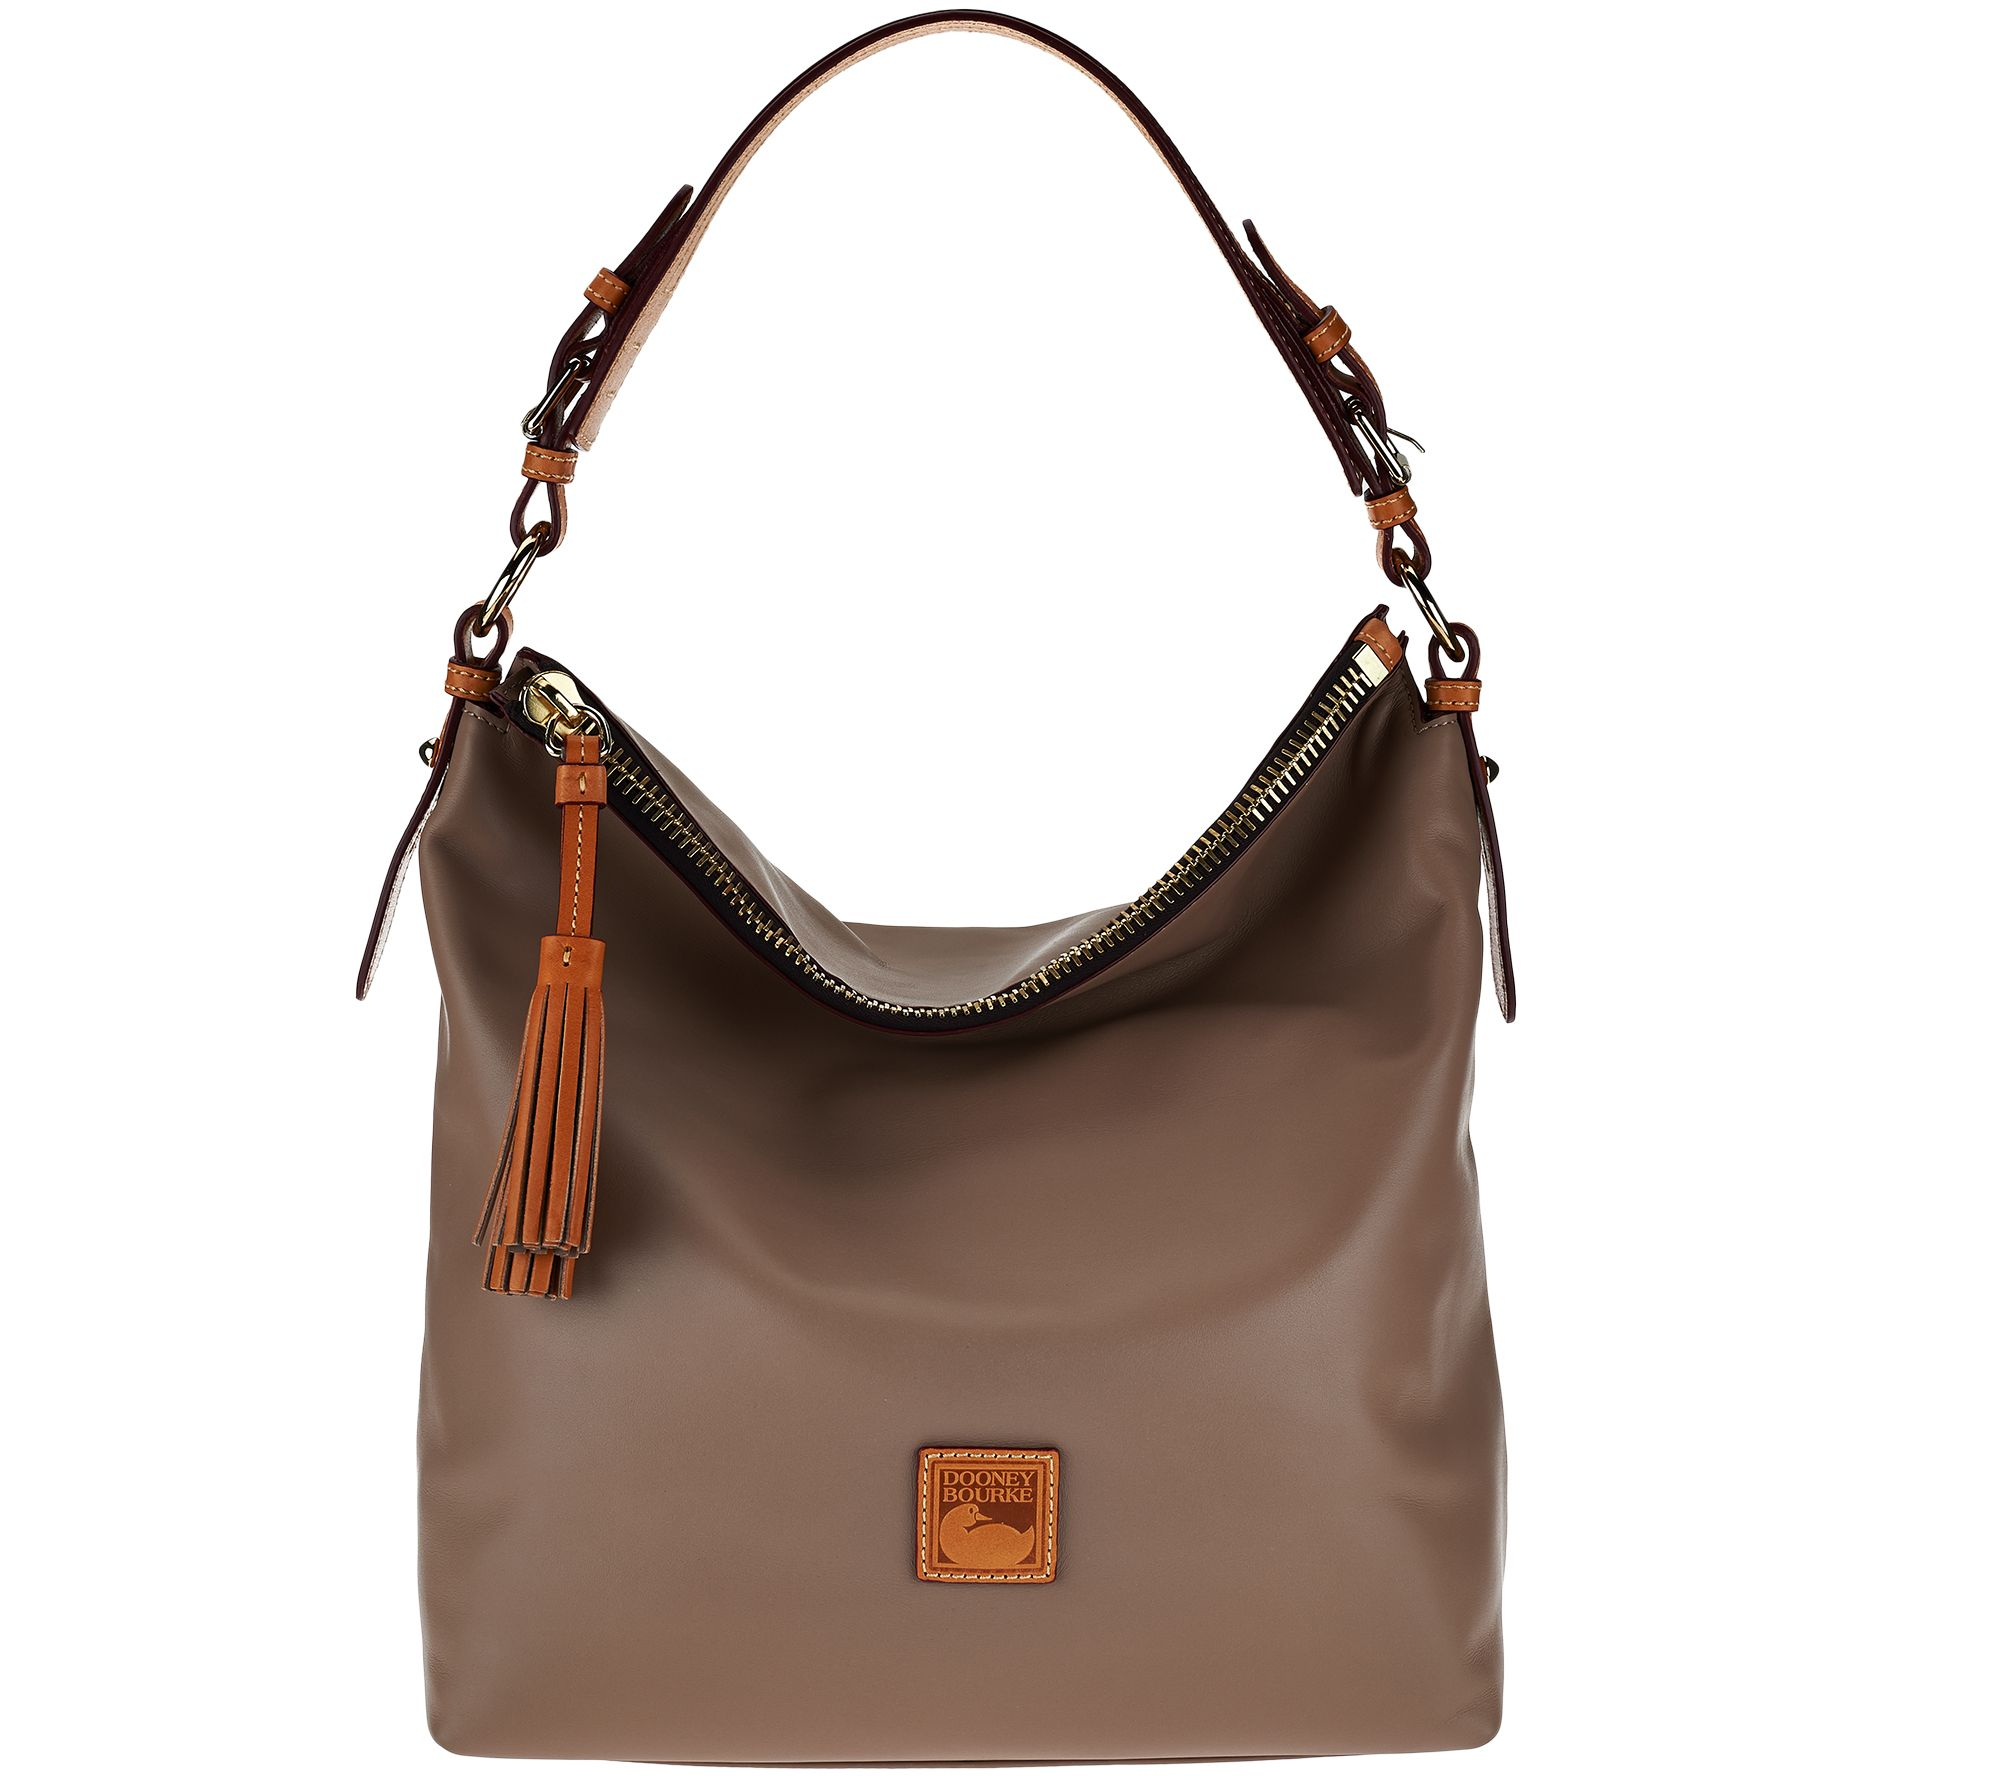 Dooney & Bourke Smooth Leather Hobo with Accessories - Page 1 ...